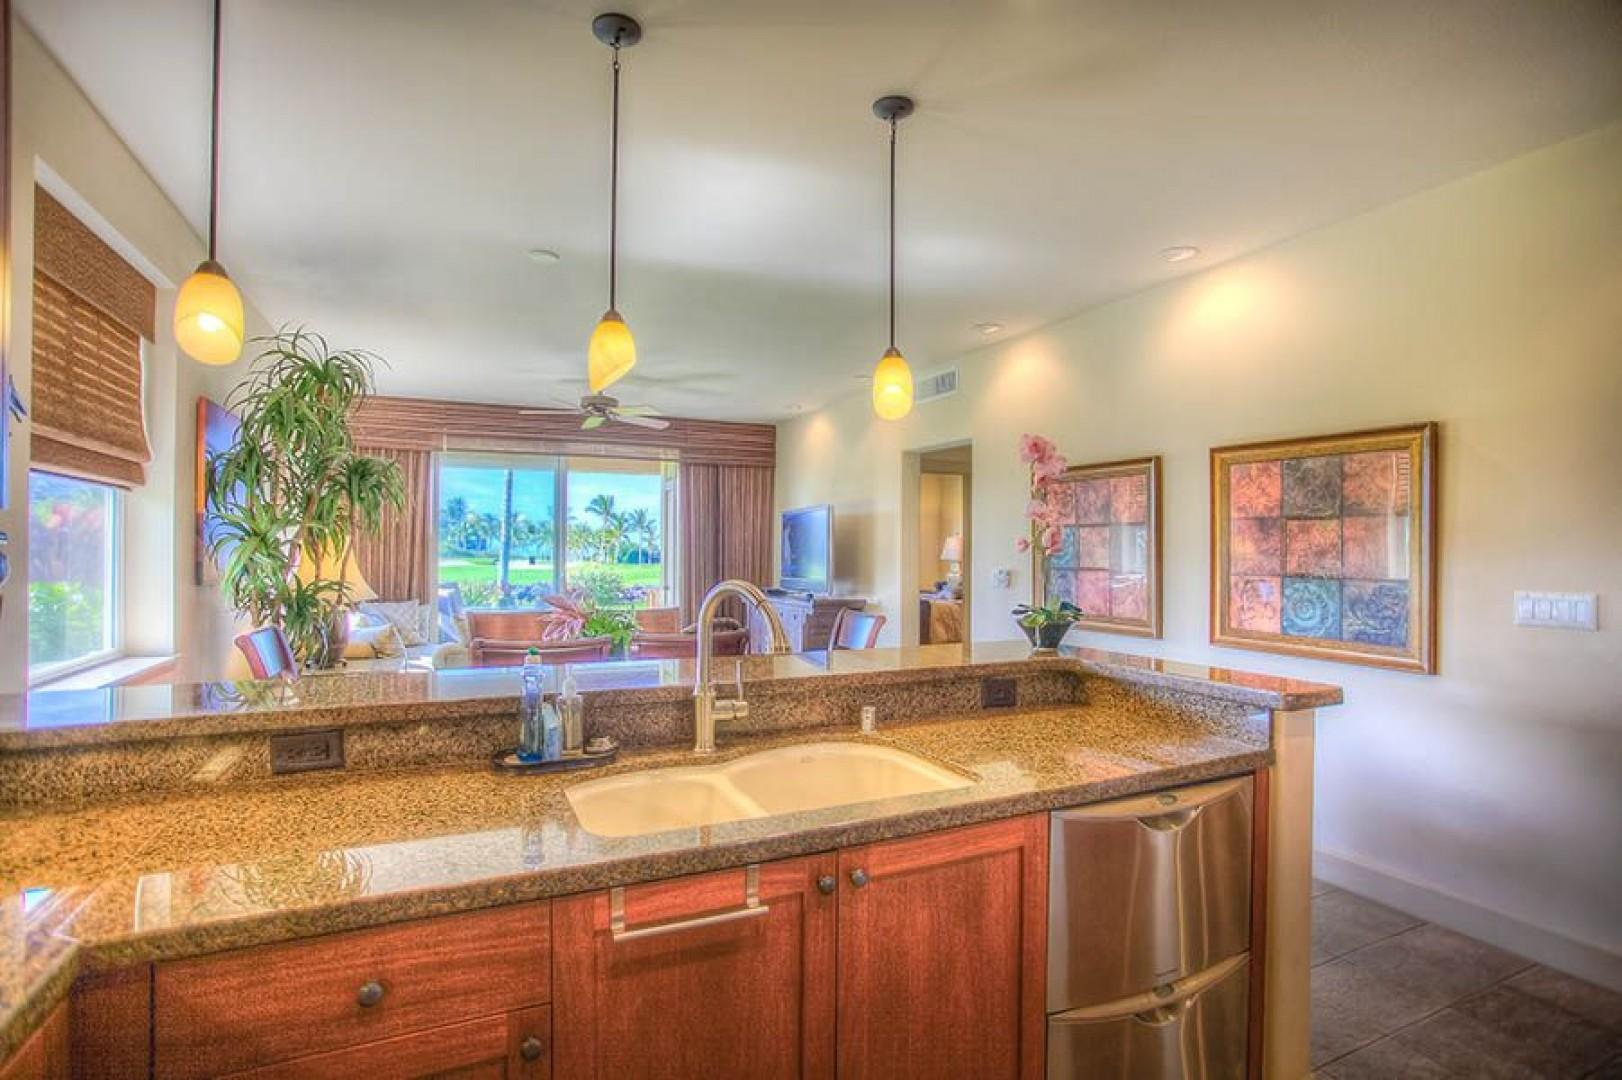 Gourmet kitchen with plenty of views while preparing a meal.